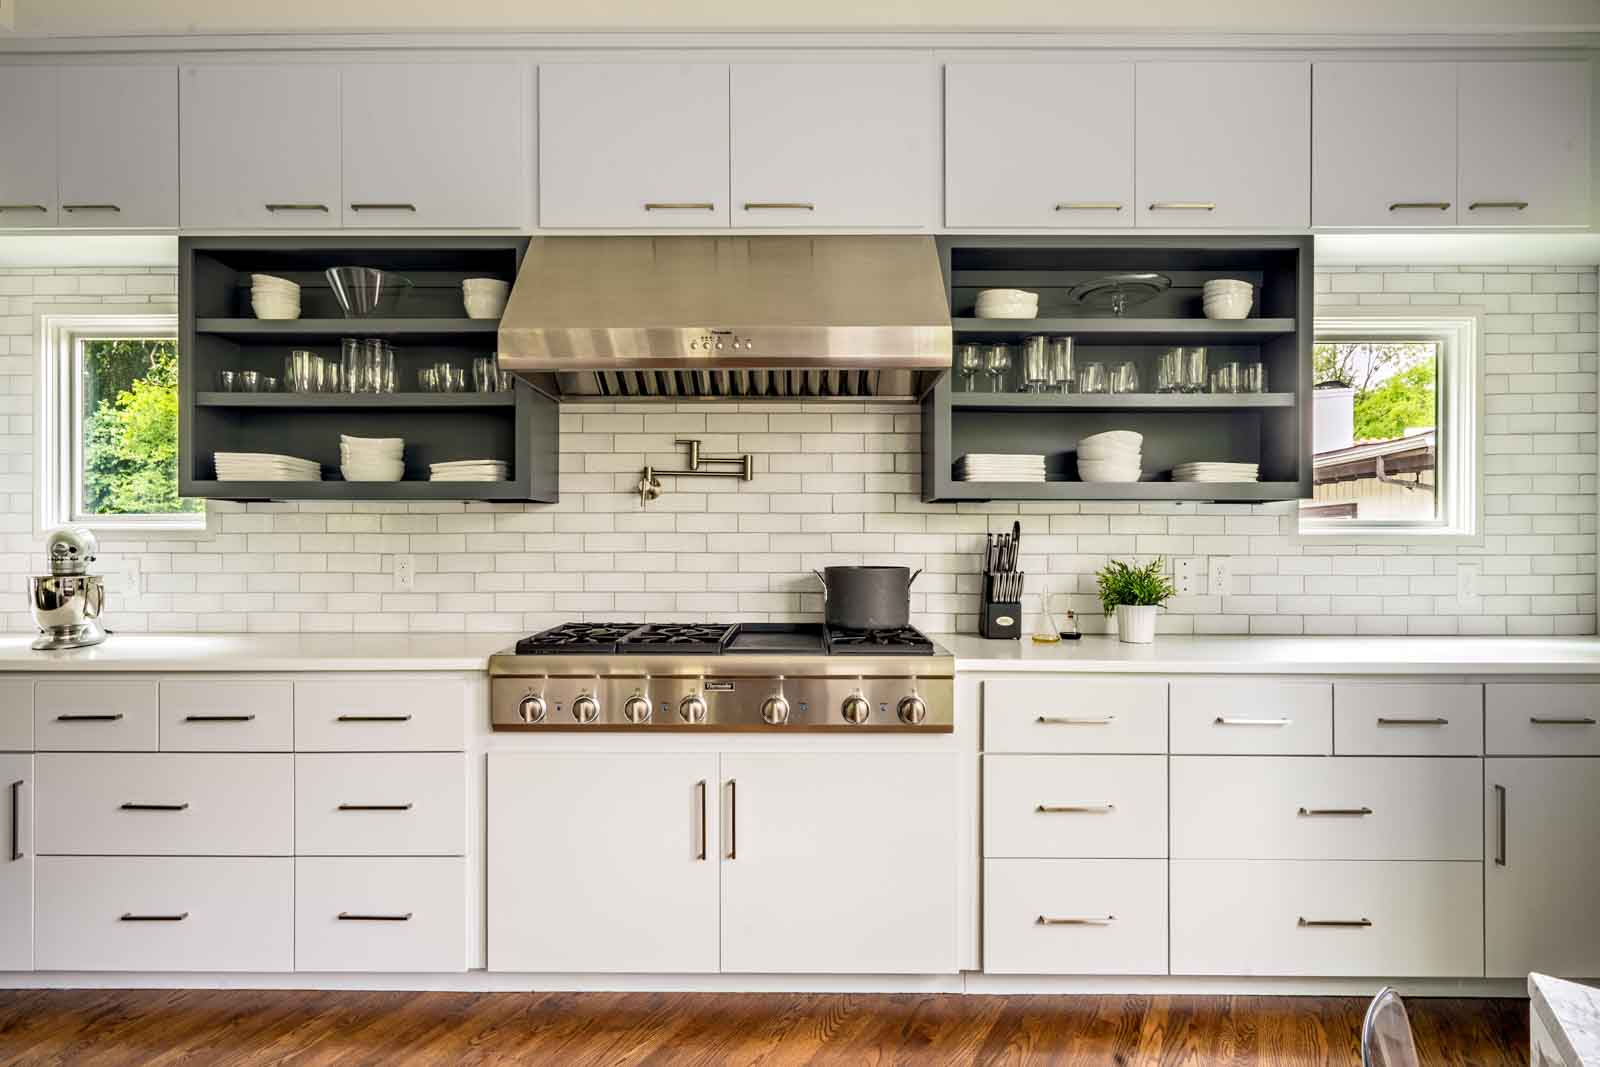 Marcelle-Guilbeau-Interior-Design-Tennessee-Kitchen